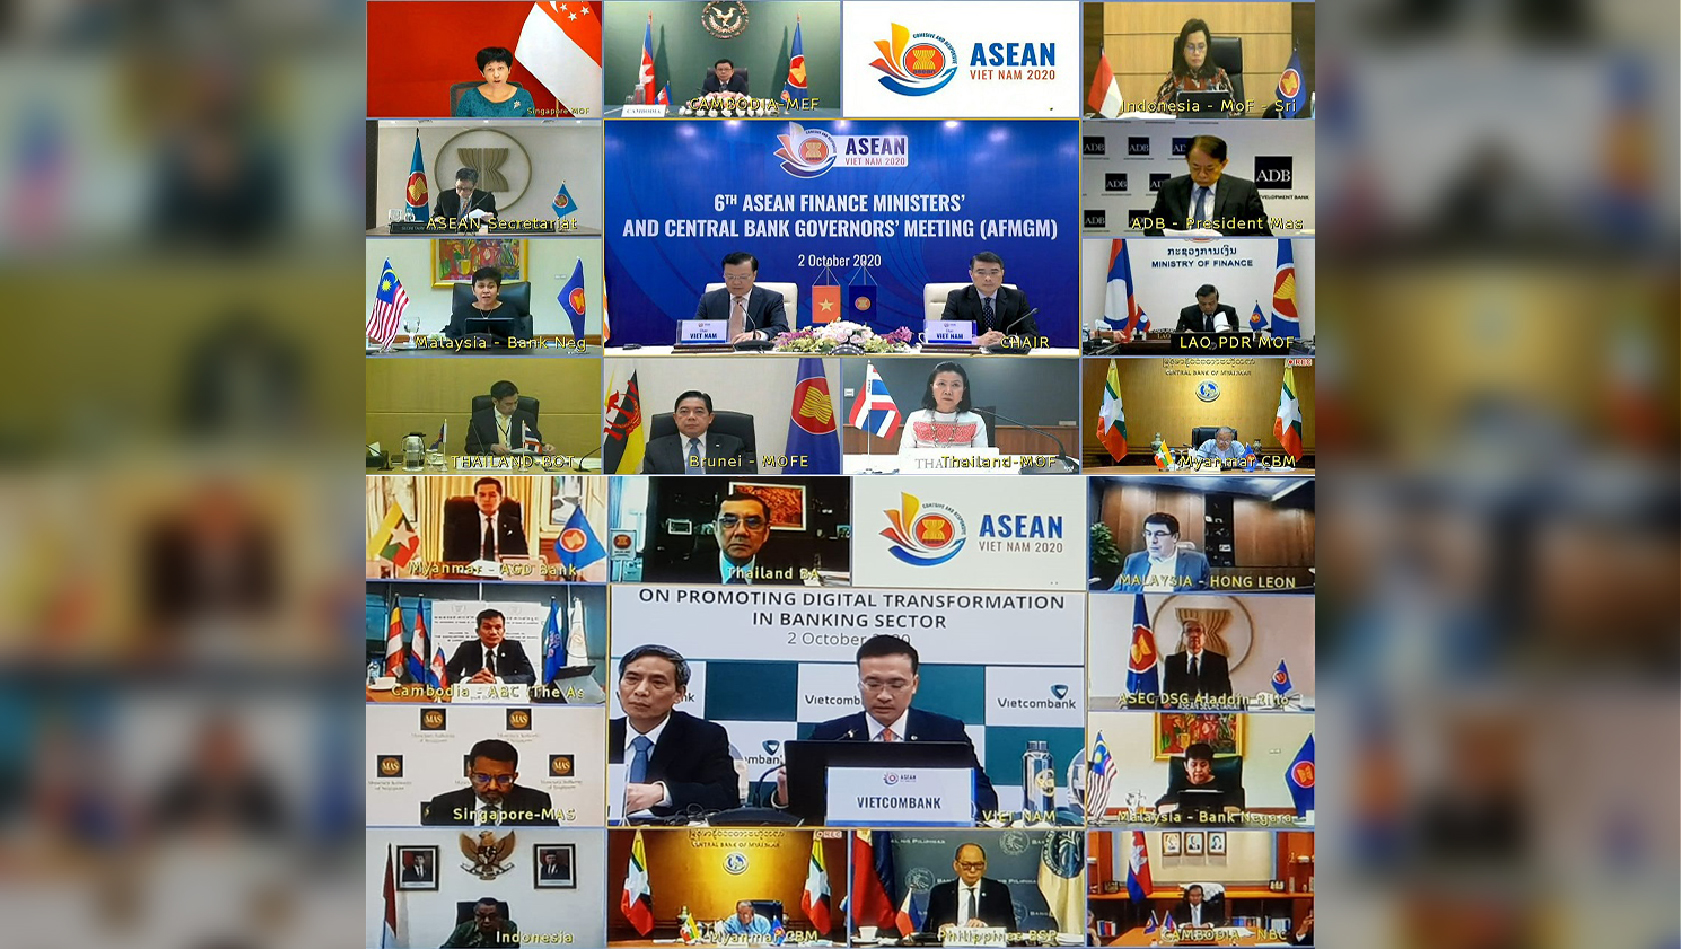 Joint Statement of the 6th ASEAN Finance Ministers' and Central Bank Governors' Meeting (AFMGM) October 02, 2020